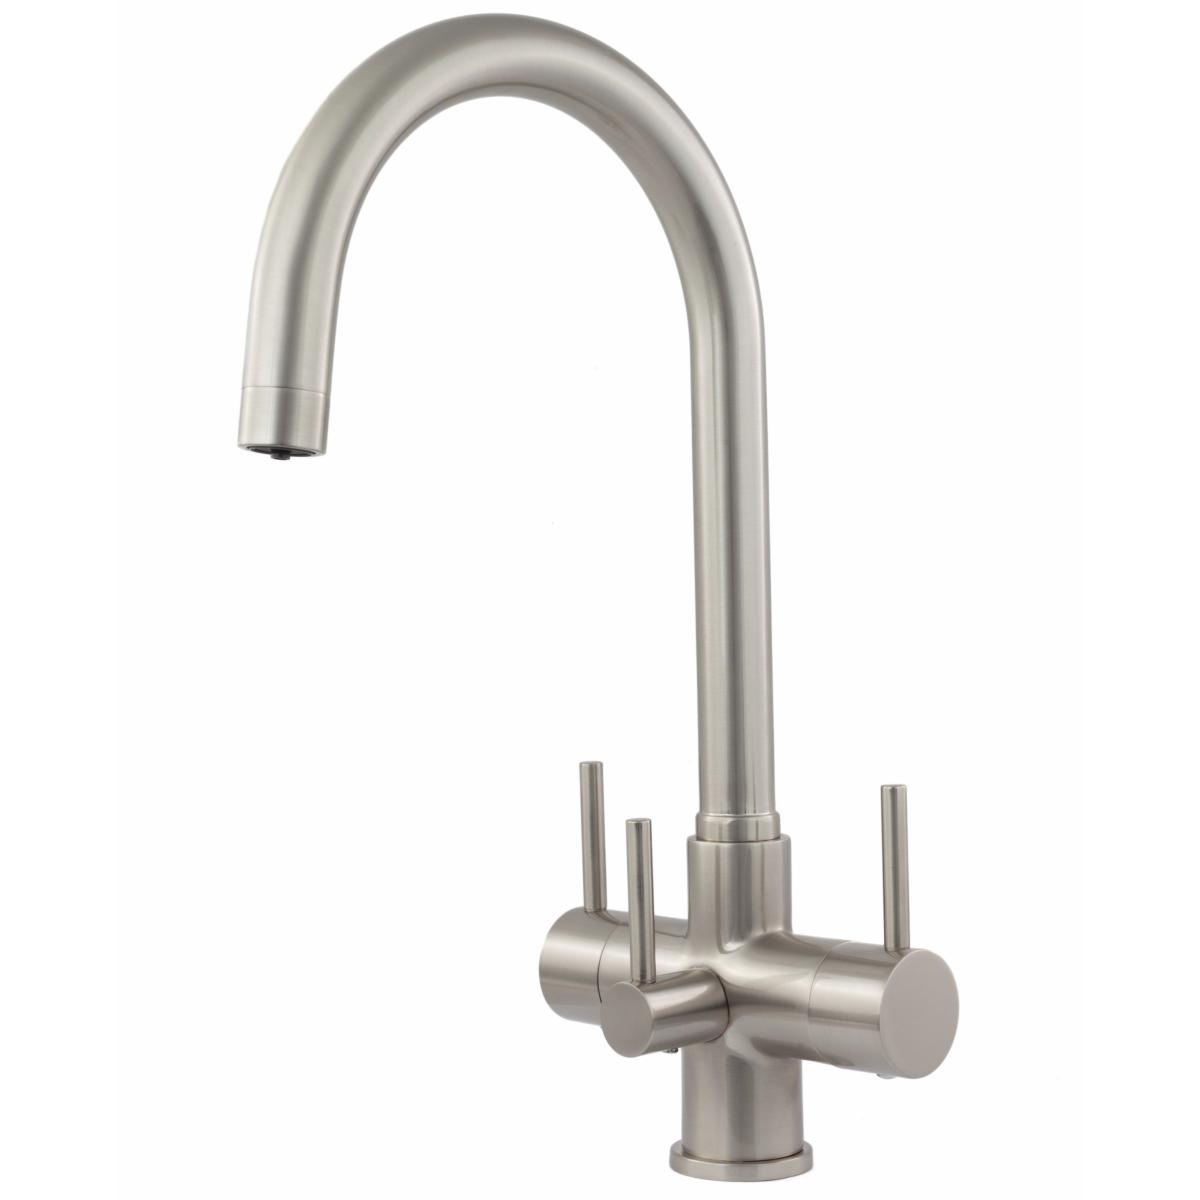 Verona 3-Way, 3 lever Kitchen Filter Tap Brushed Steel